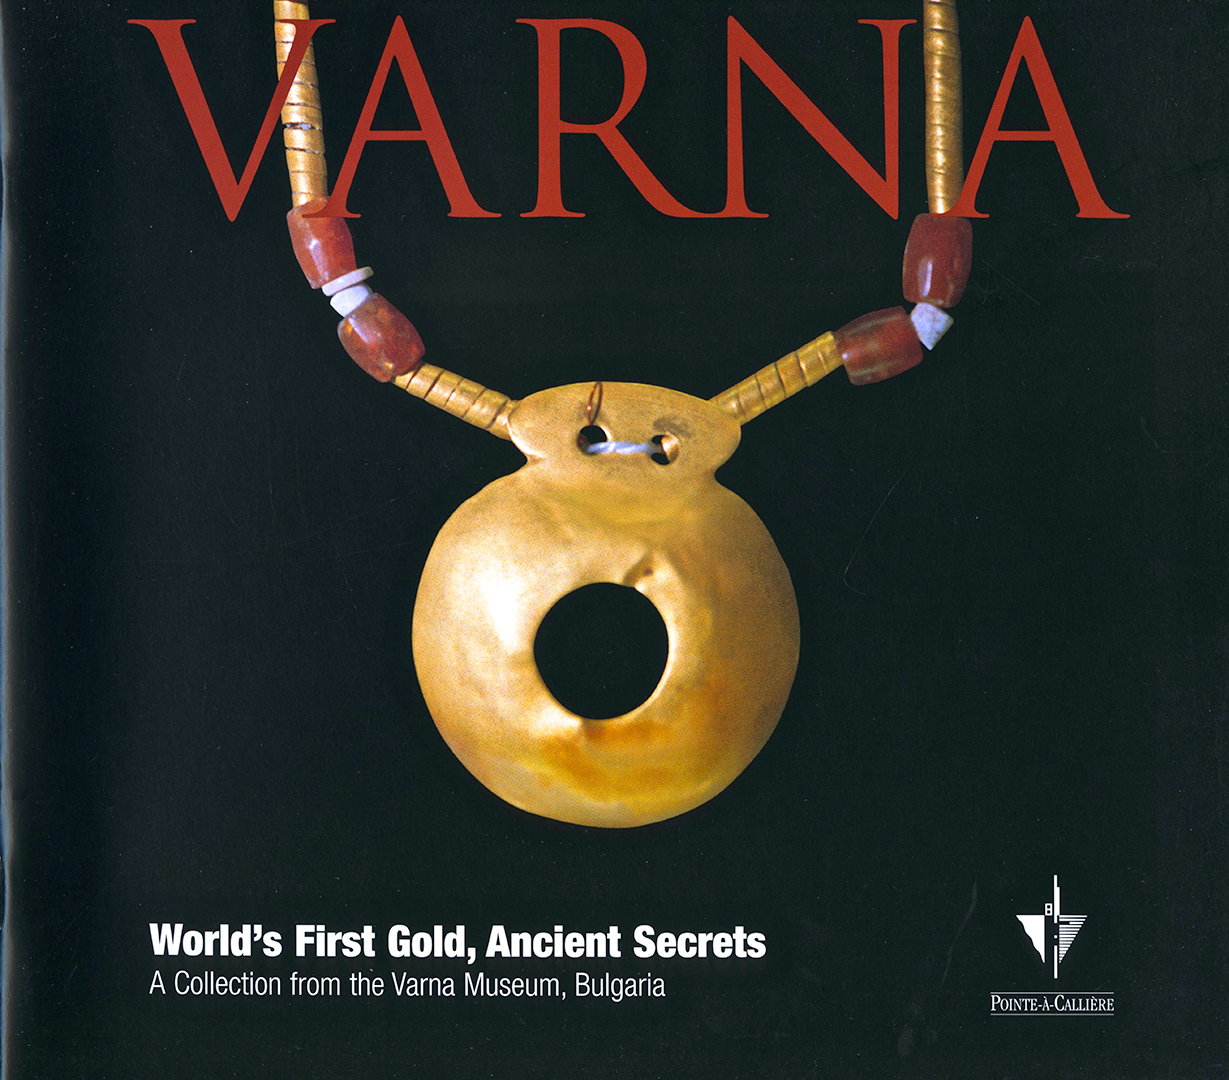 Varna. World's First Gold, Ancient Secrets